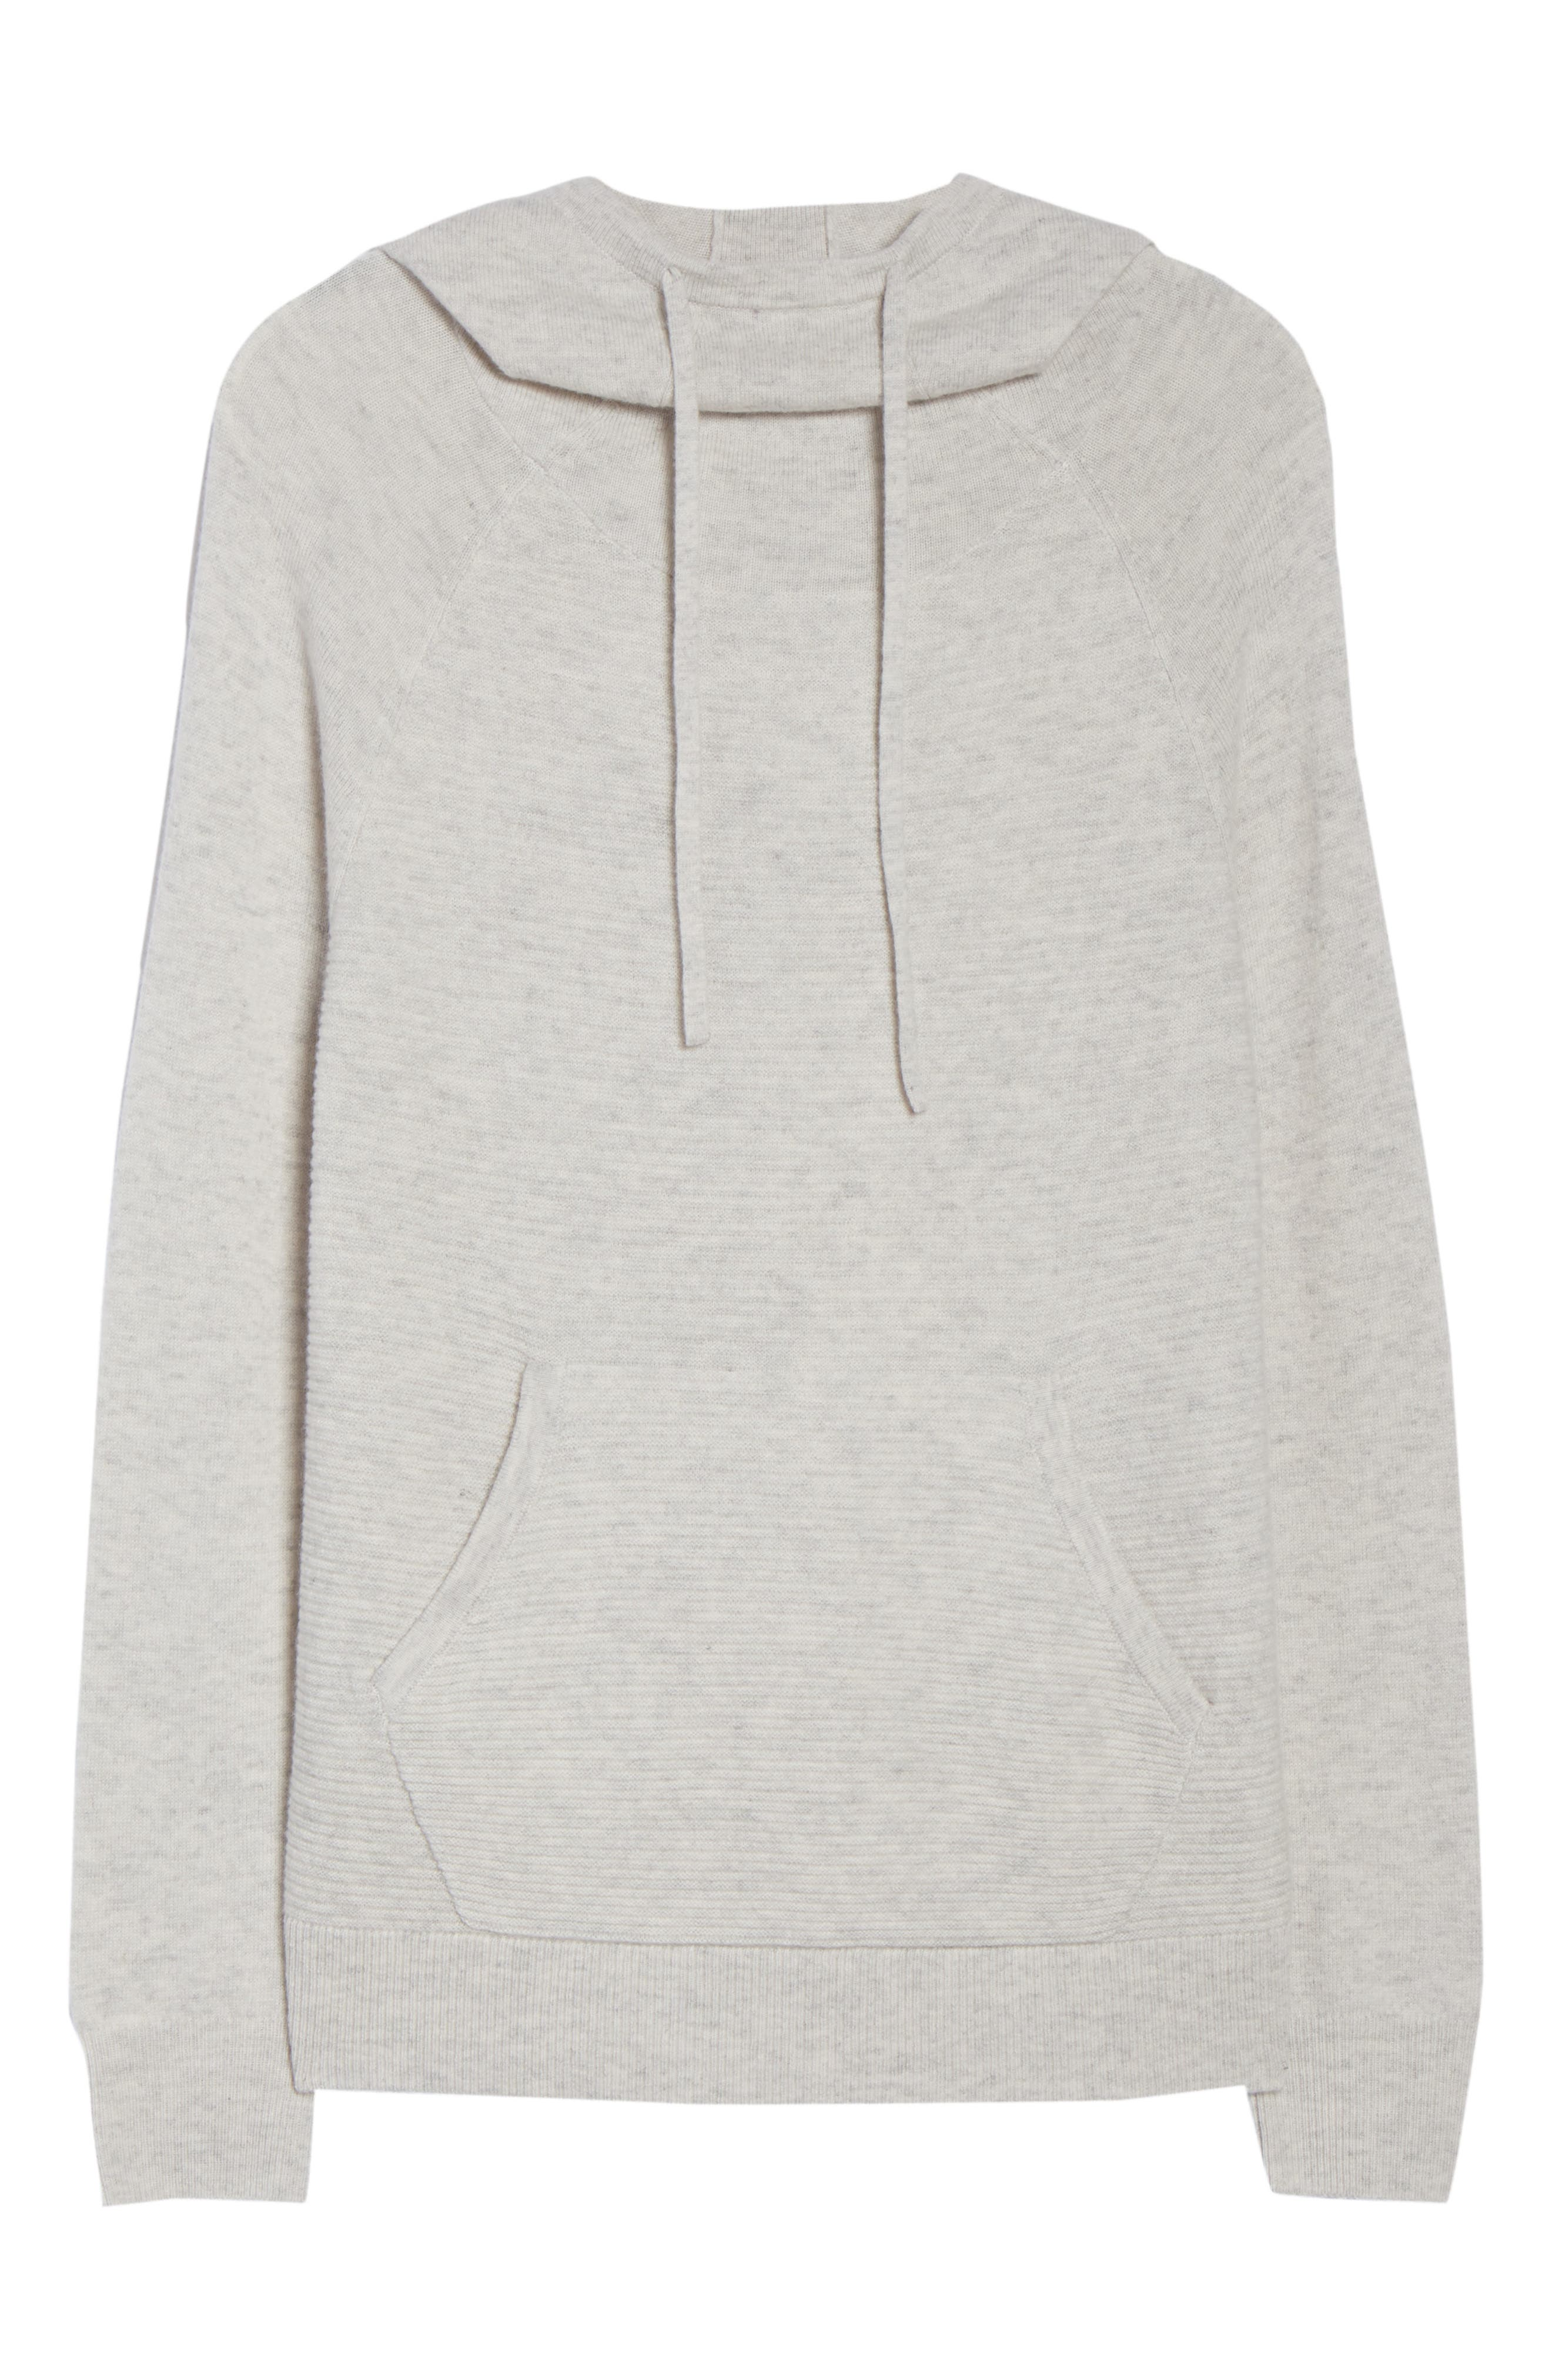 Cashmere and Wool Hoodie,                             Alternate thumbnail 7, color,                             Grey Chime Heather